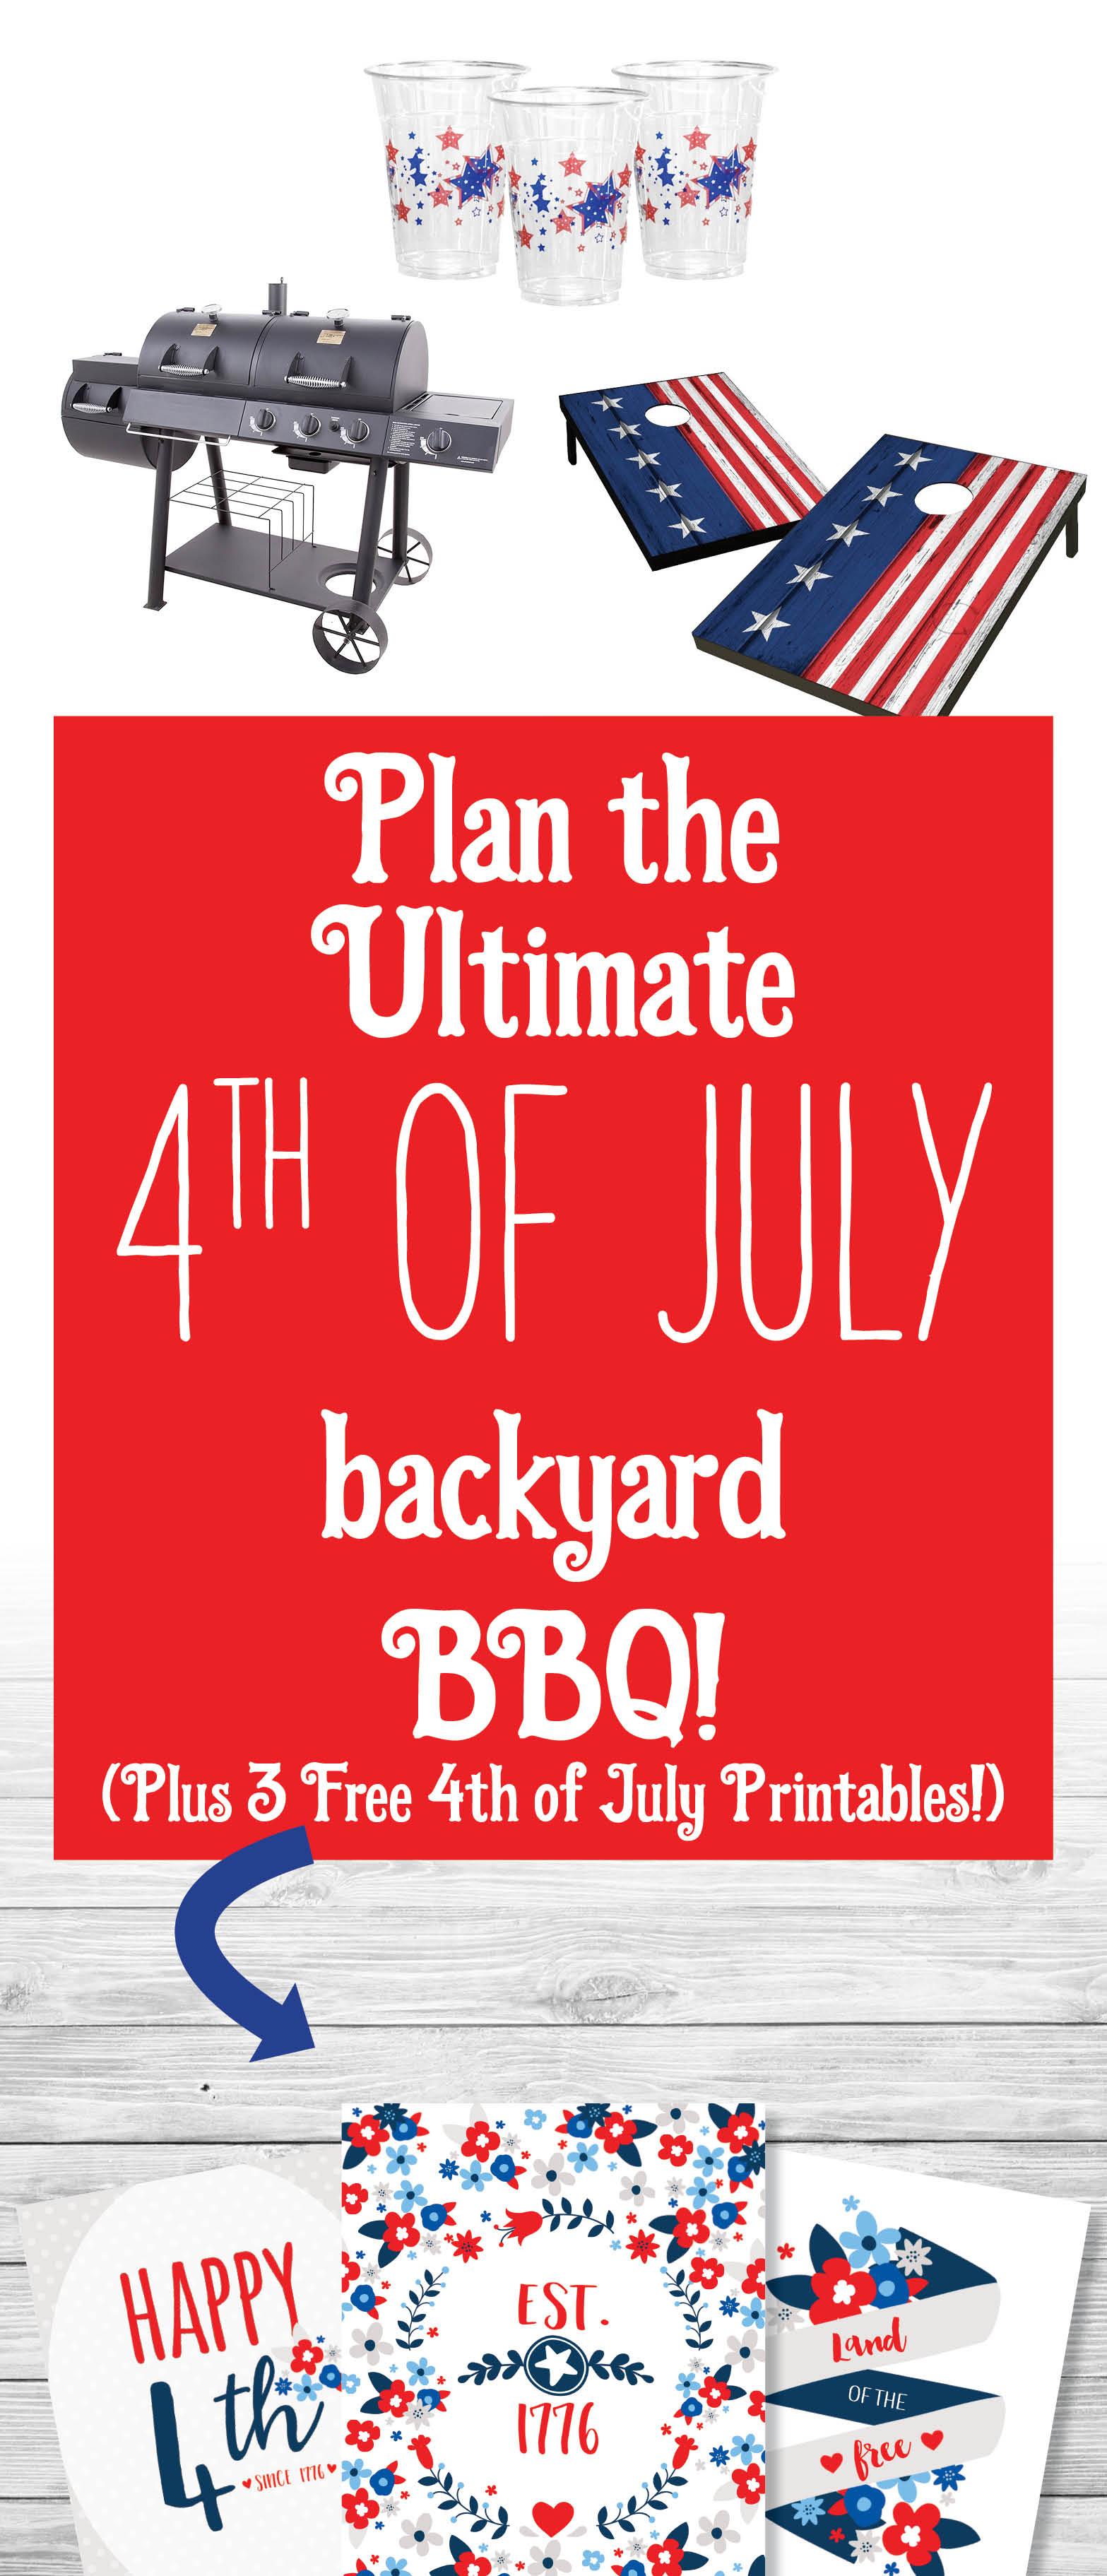 Throw the Ultimate 4th of July Backyard BBQ - Plus Free Printables!